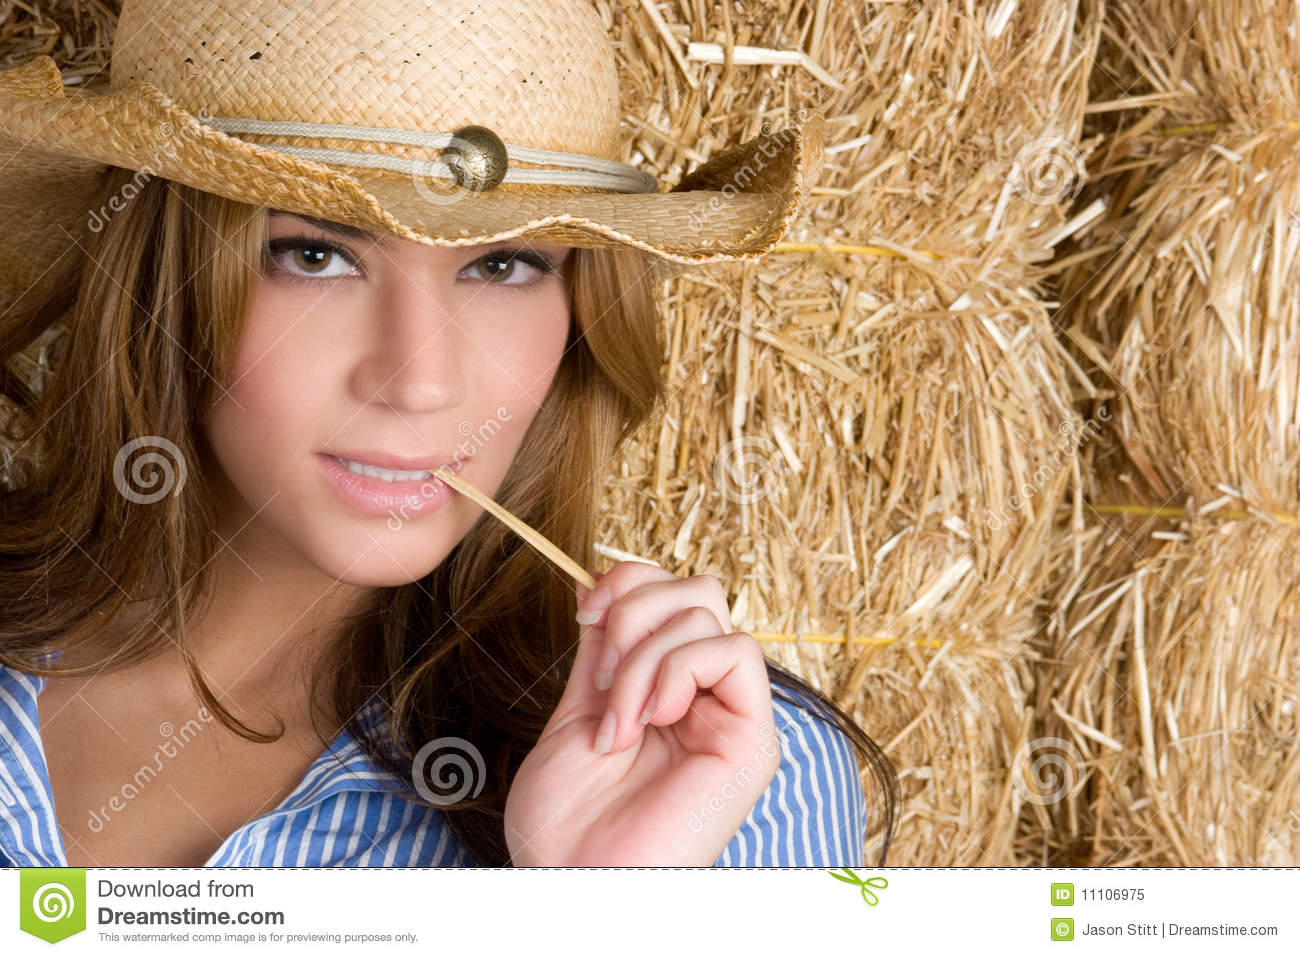 Resistol Cowboy and Modern Mens Hats  FAQs  The Best